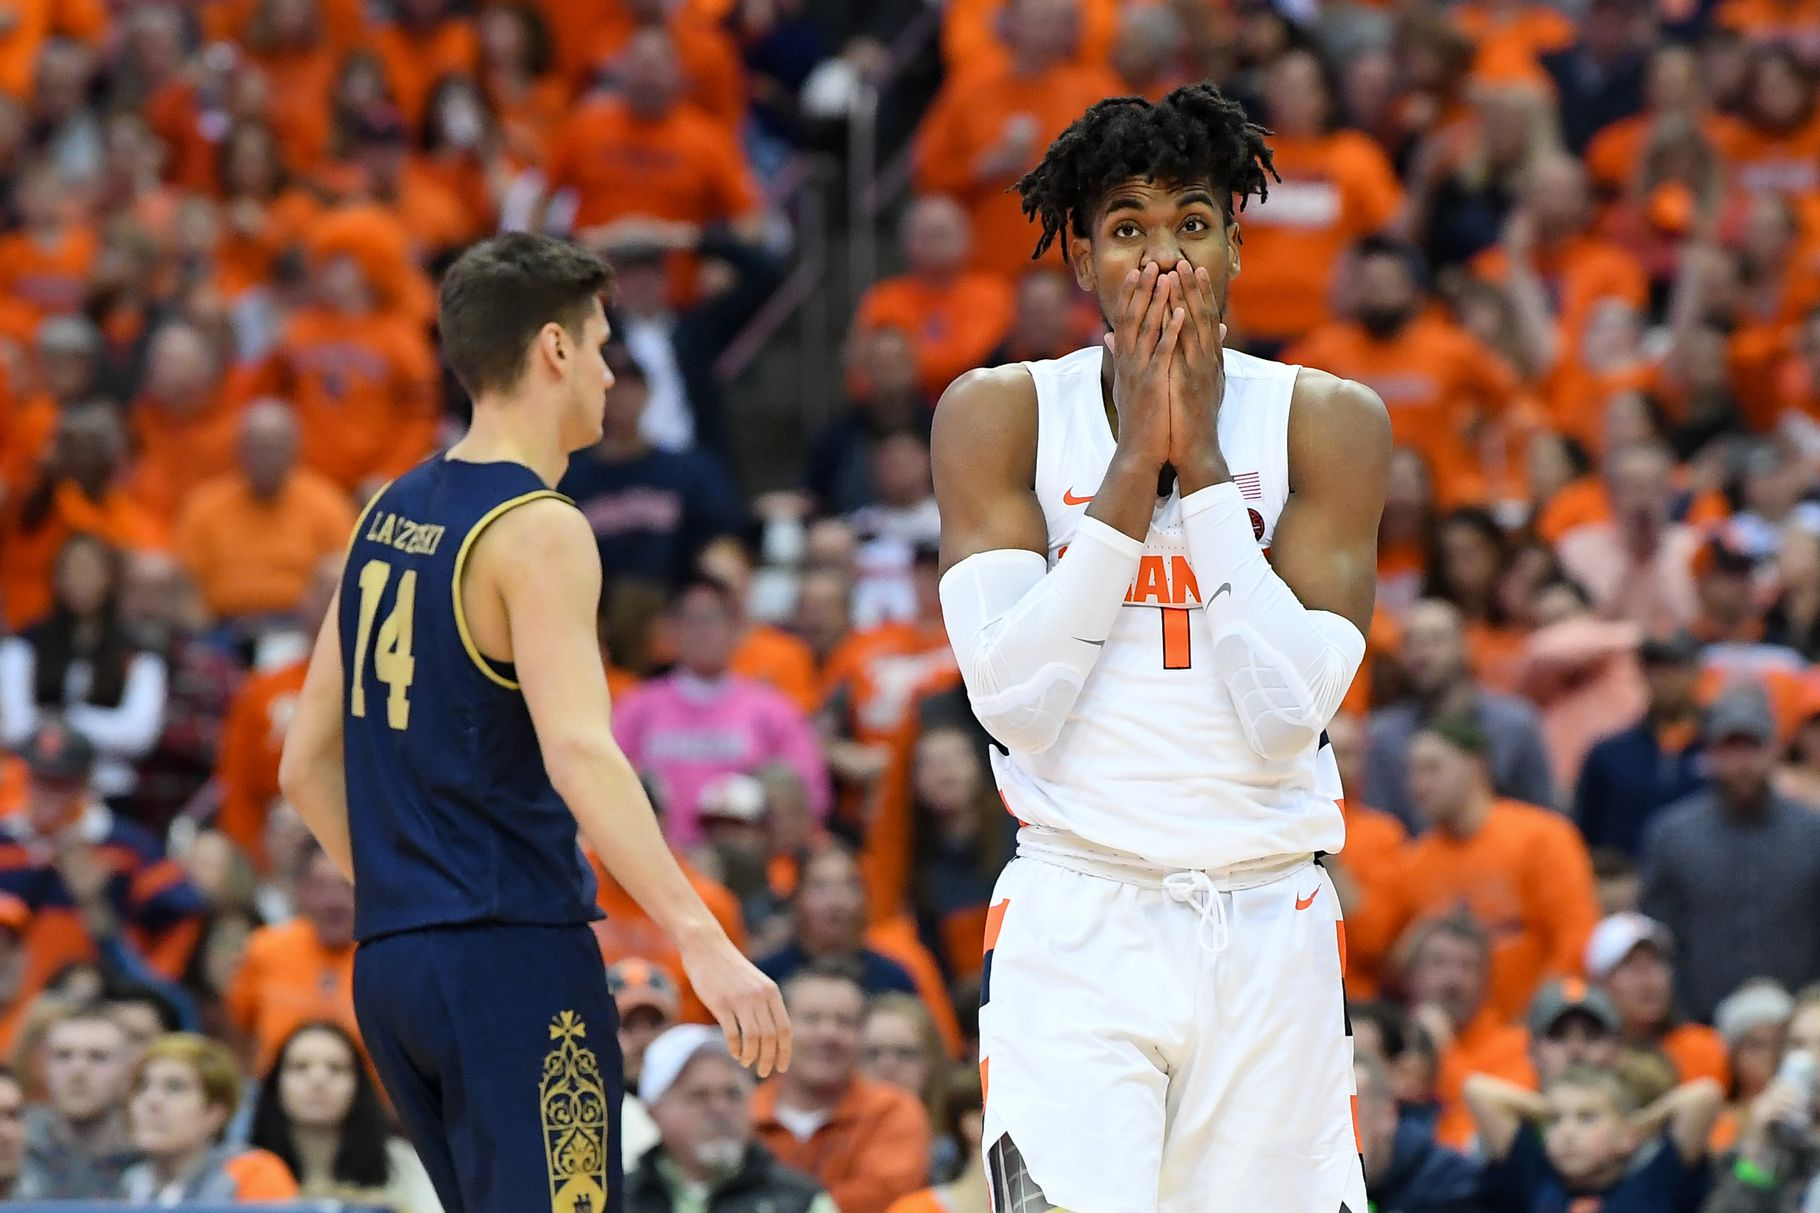 Syracuse knocks off No. 18 Virginia in overtime